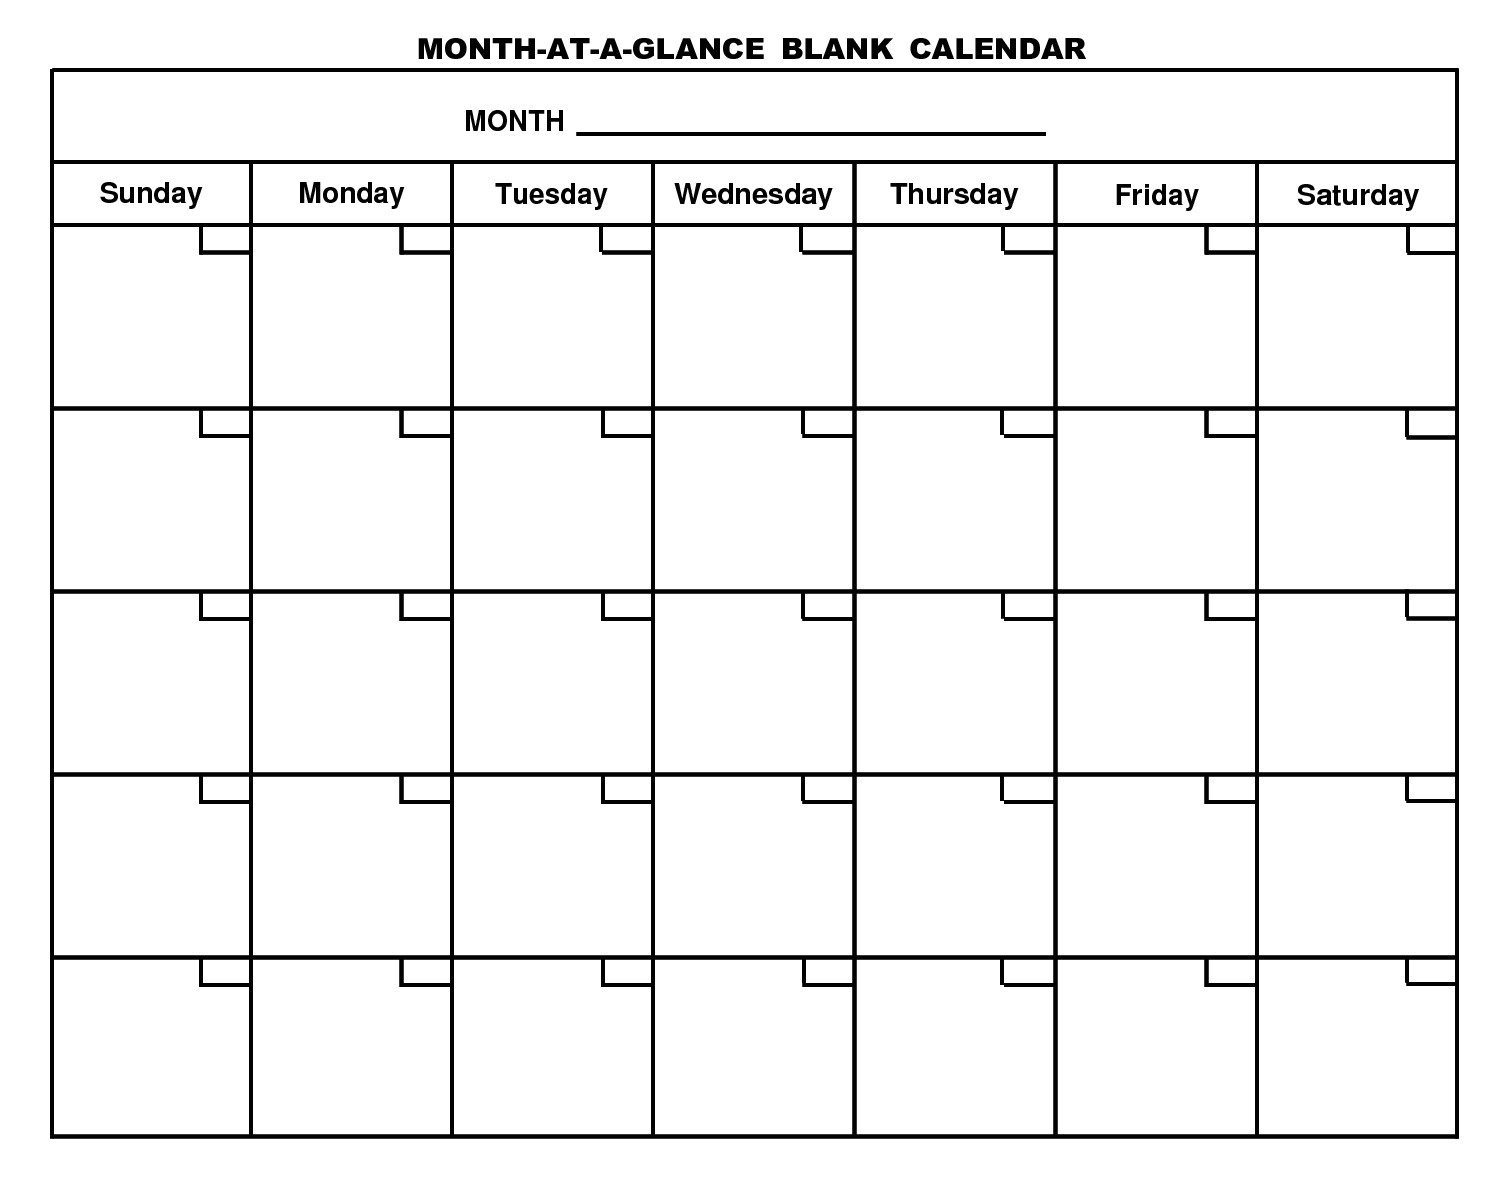 printable calendar i can type in